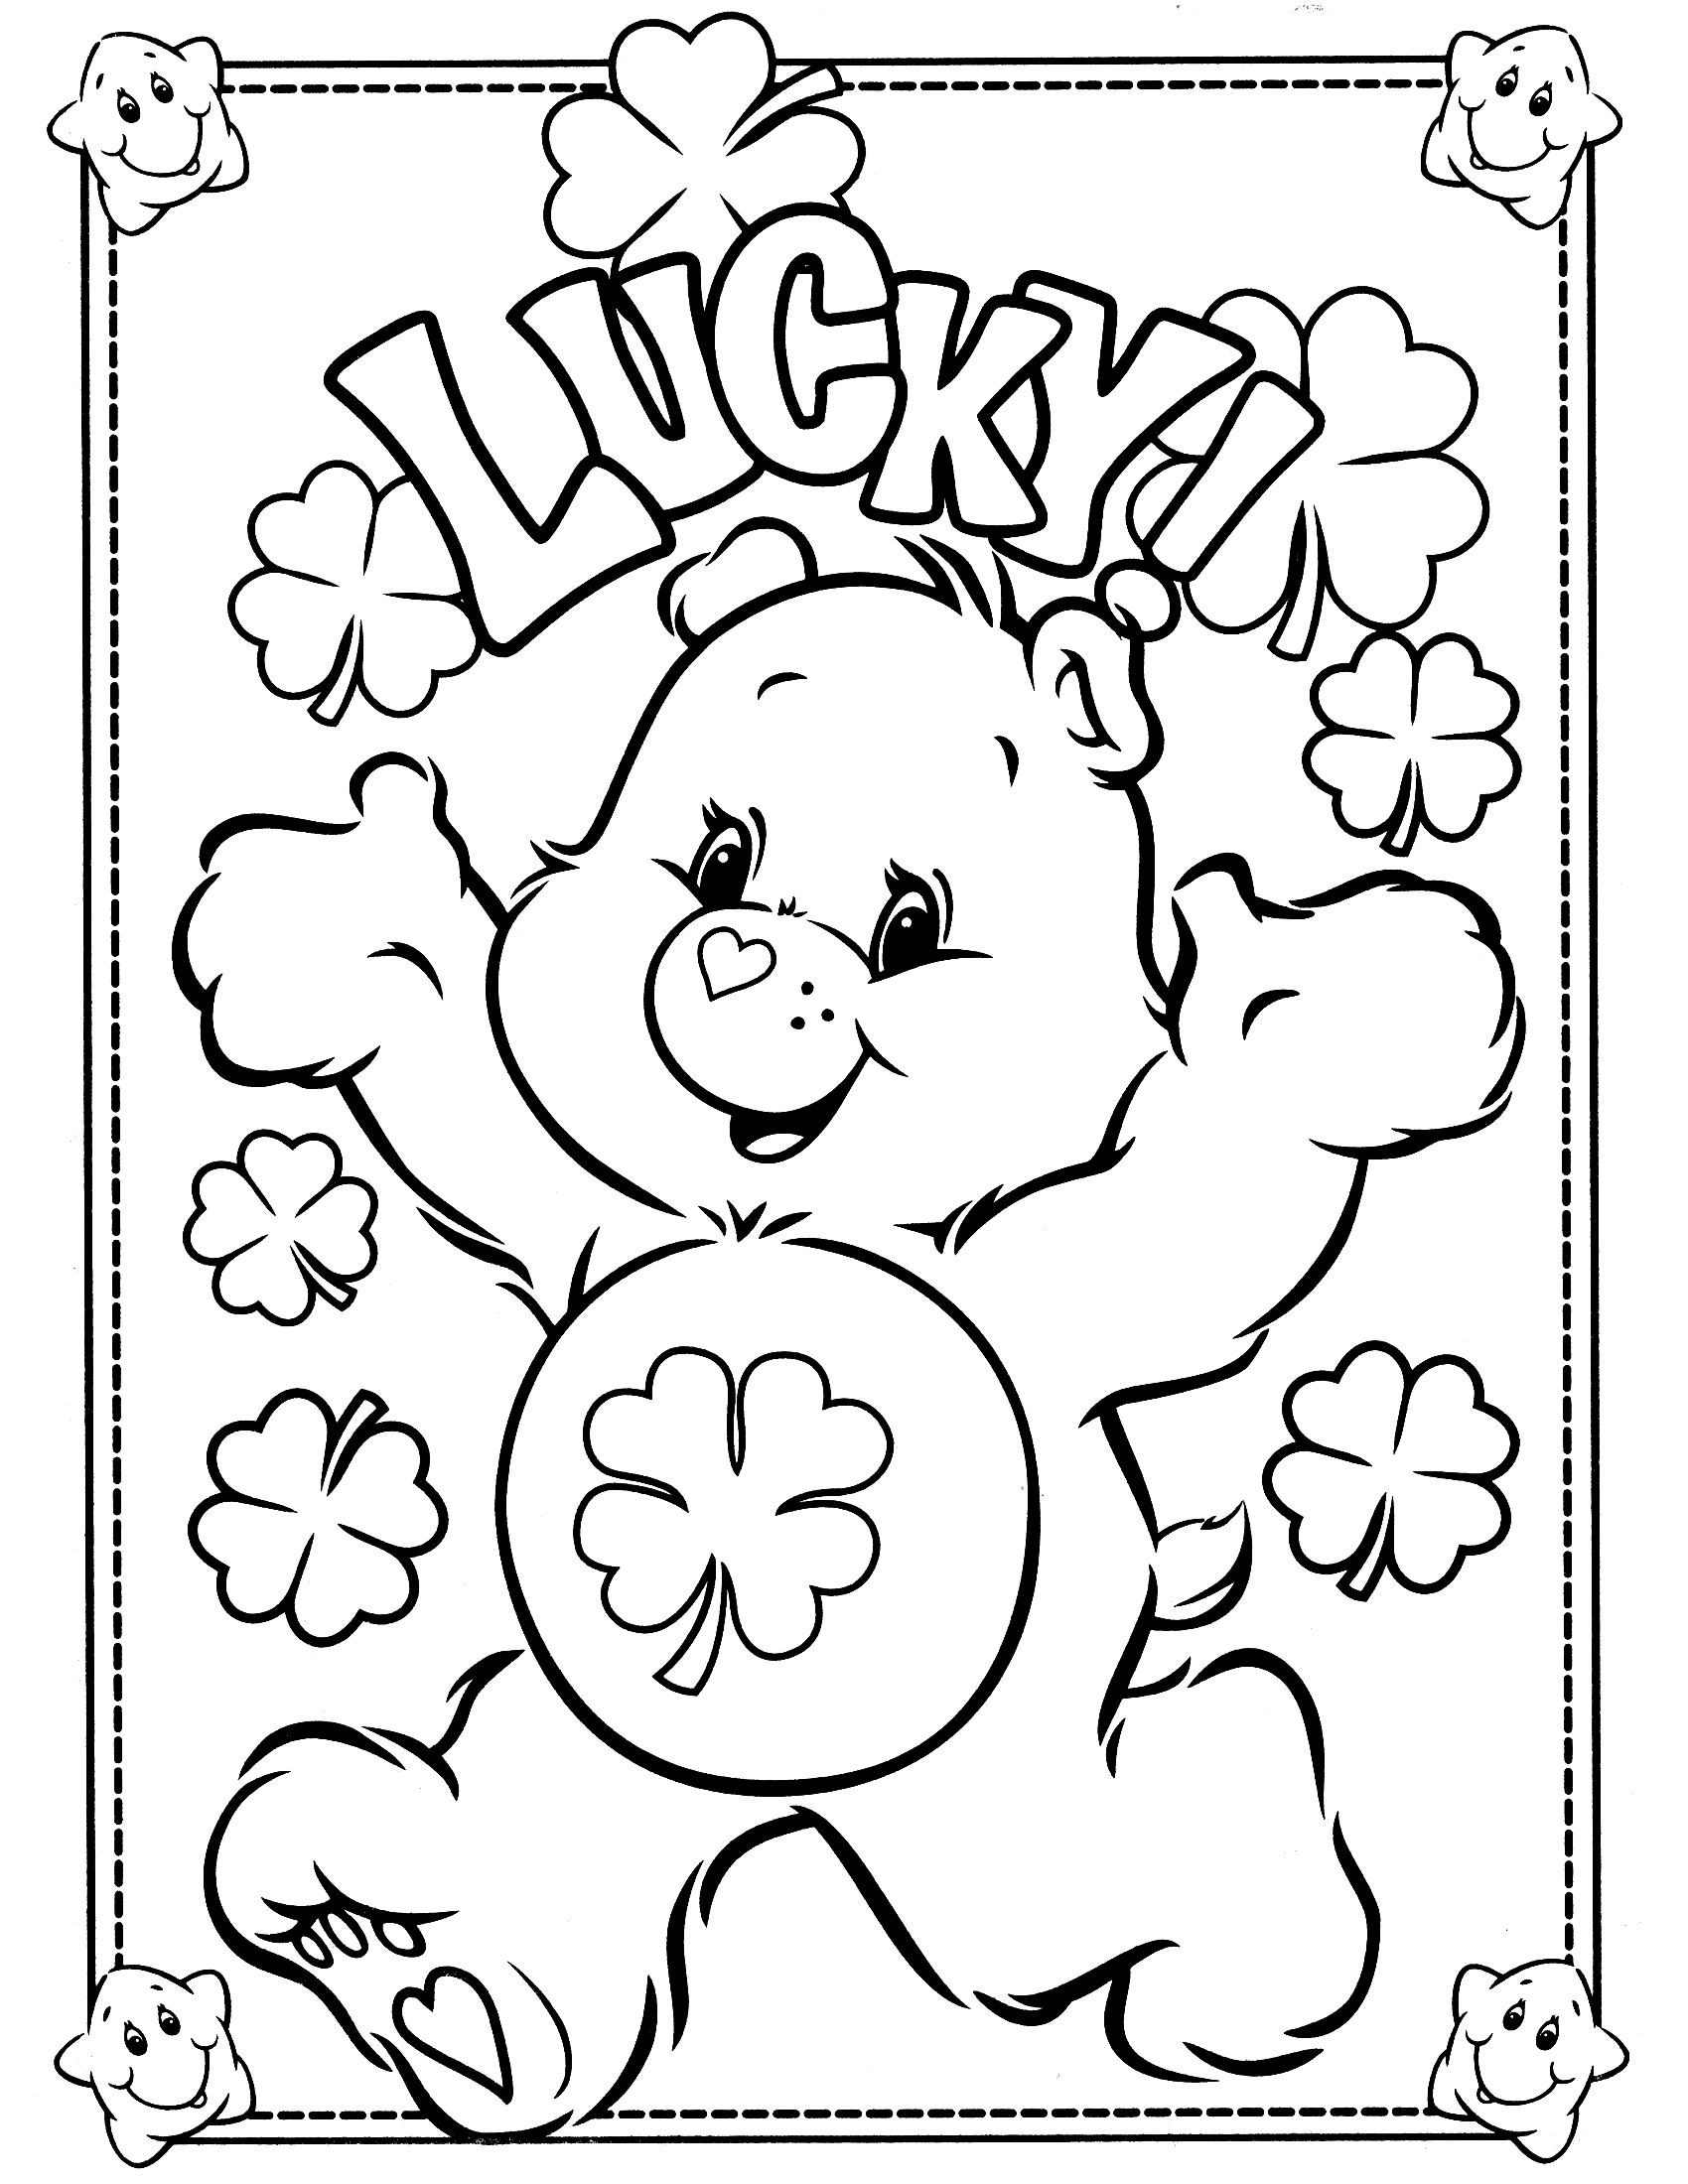 Free printable care bear coloring pages for kids for Coloring pages